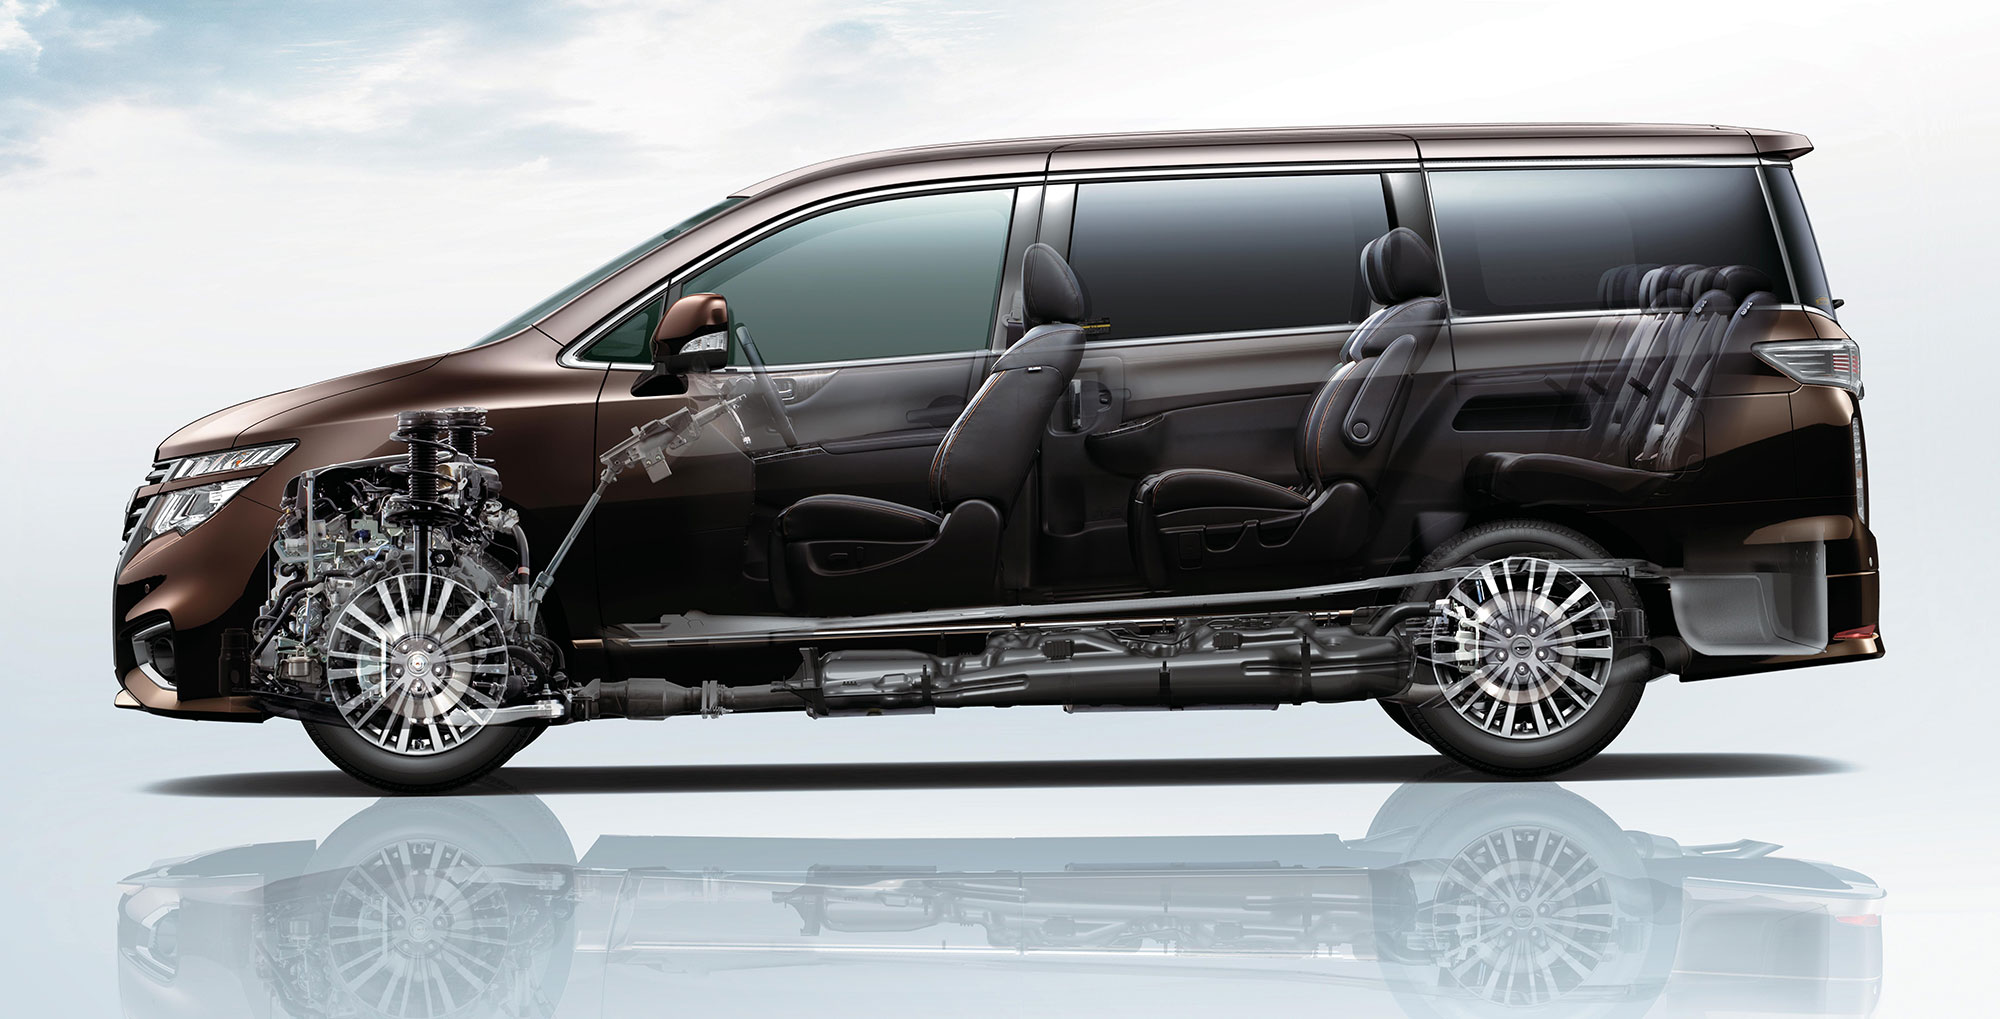 Nissan 2018 >> Nissan Elgrand Facelift MPV now in Malaysia, RM388k Paul Tan - Image 248680